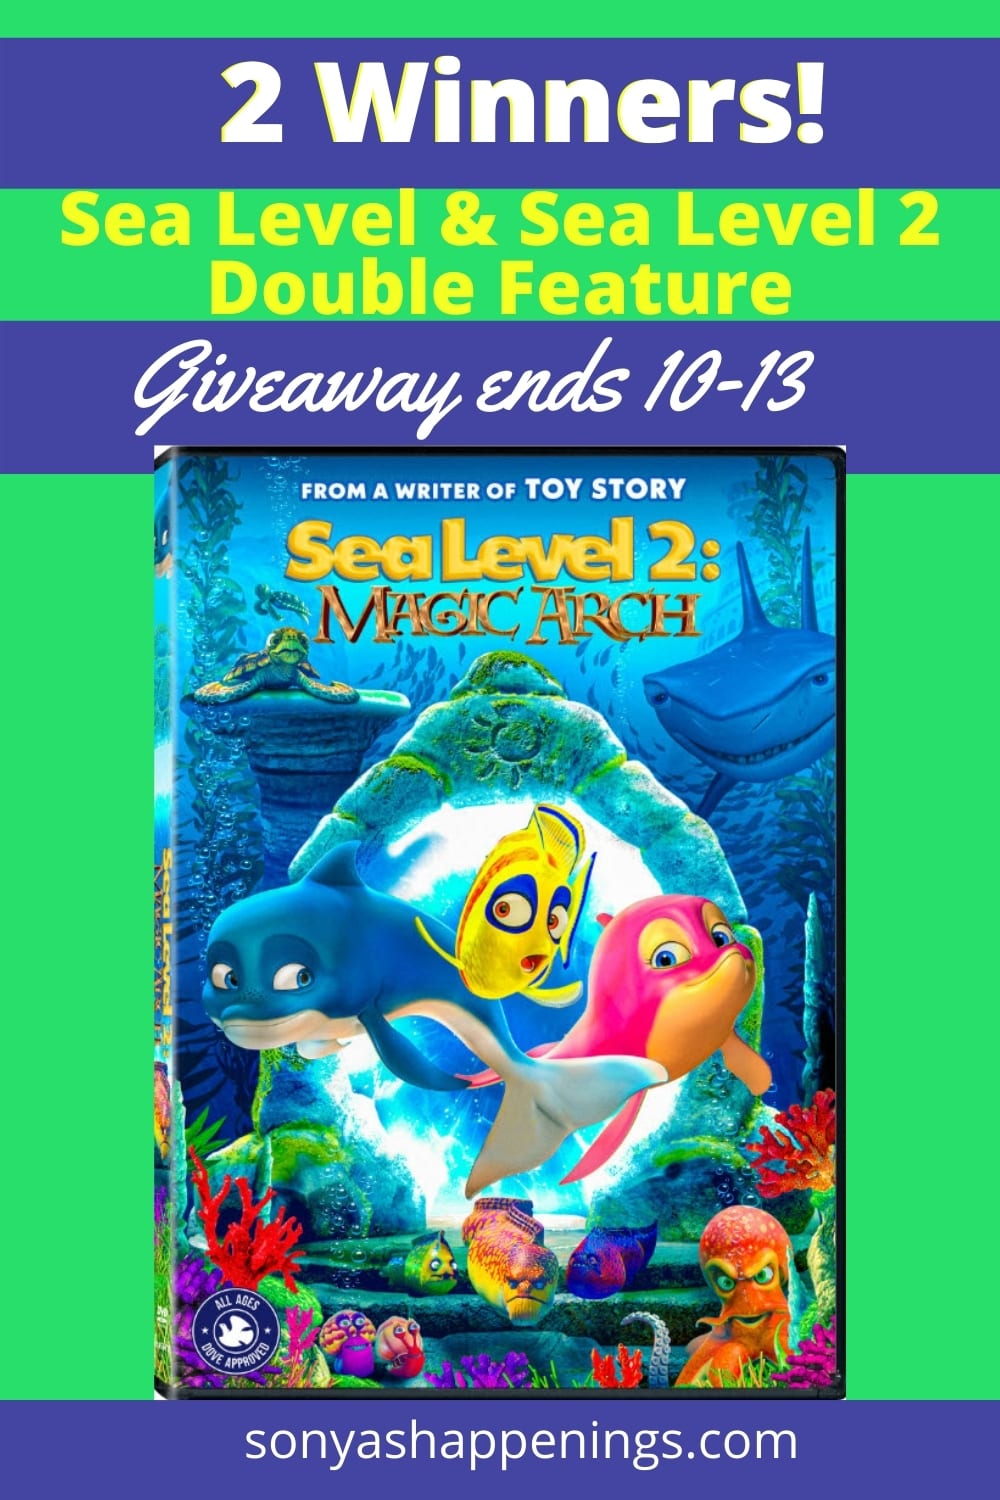 Win Sea Level and Sea Level 2 - double feature (2 winners)- Giveaway ends 10-13